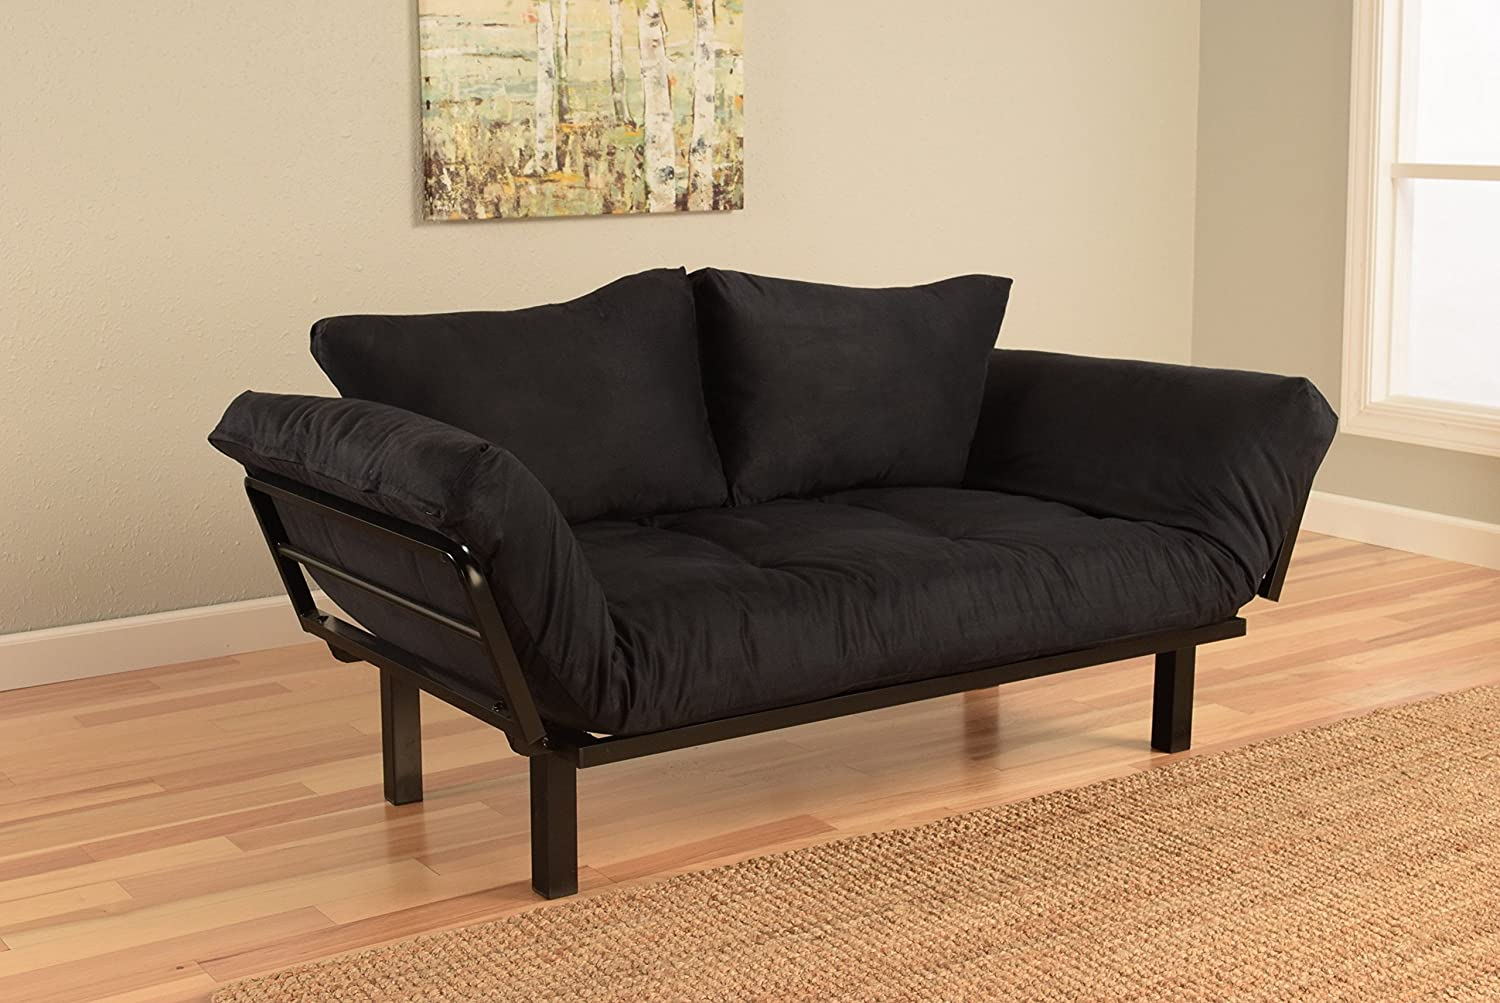 Futon Honolulu Home Decor